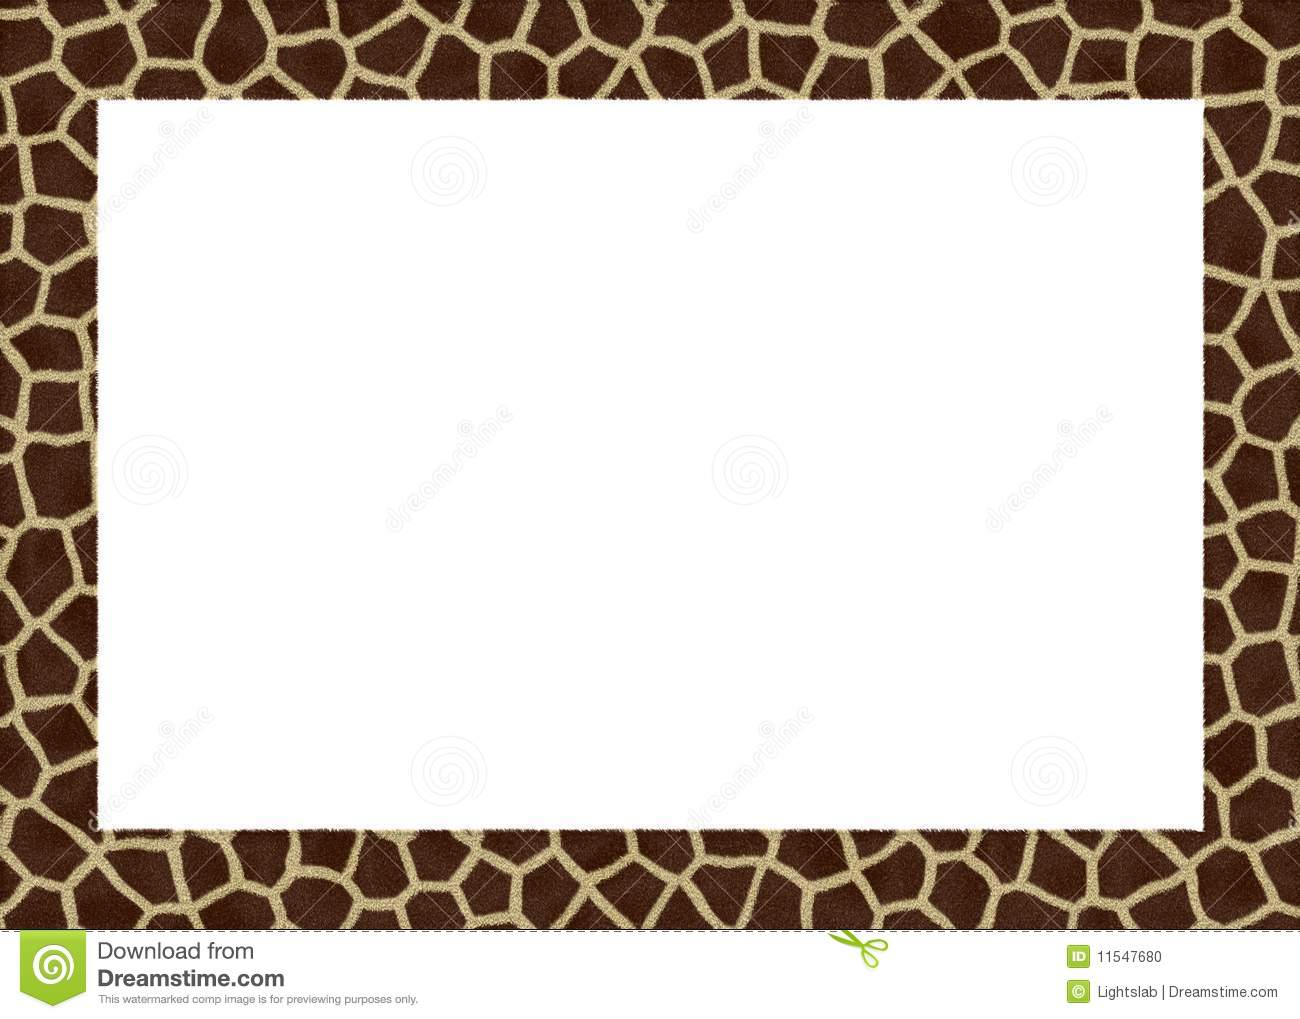 Animal Fur Abstract Foto Frame Stock Illustration